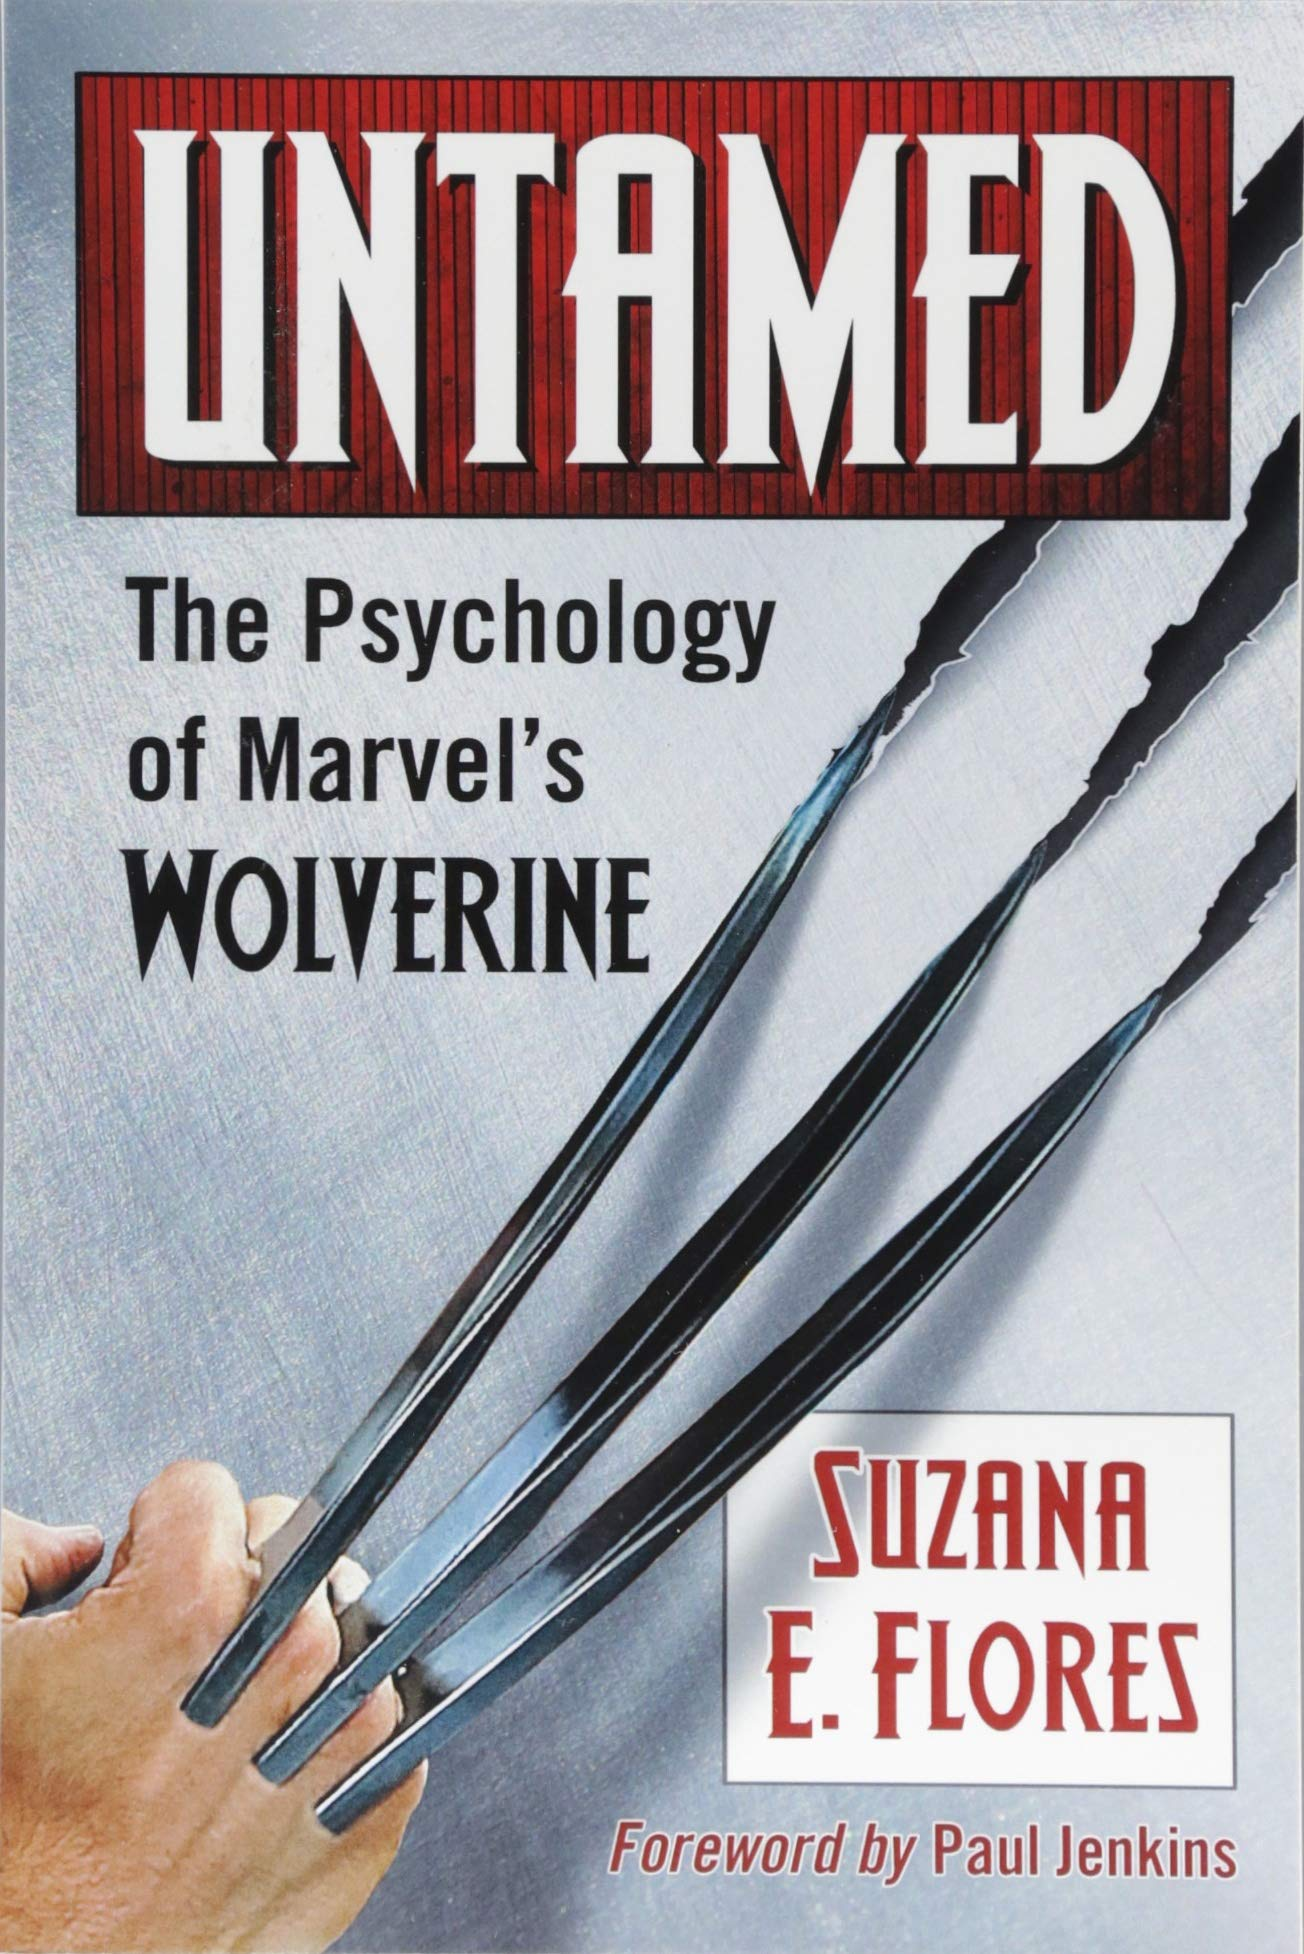 Amazon.com: Untamed: The Psychology of Marvel's Wolverine (9781476674421):  Suzana E. Flores;Foreword by Paul Jenkins: Books